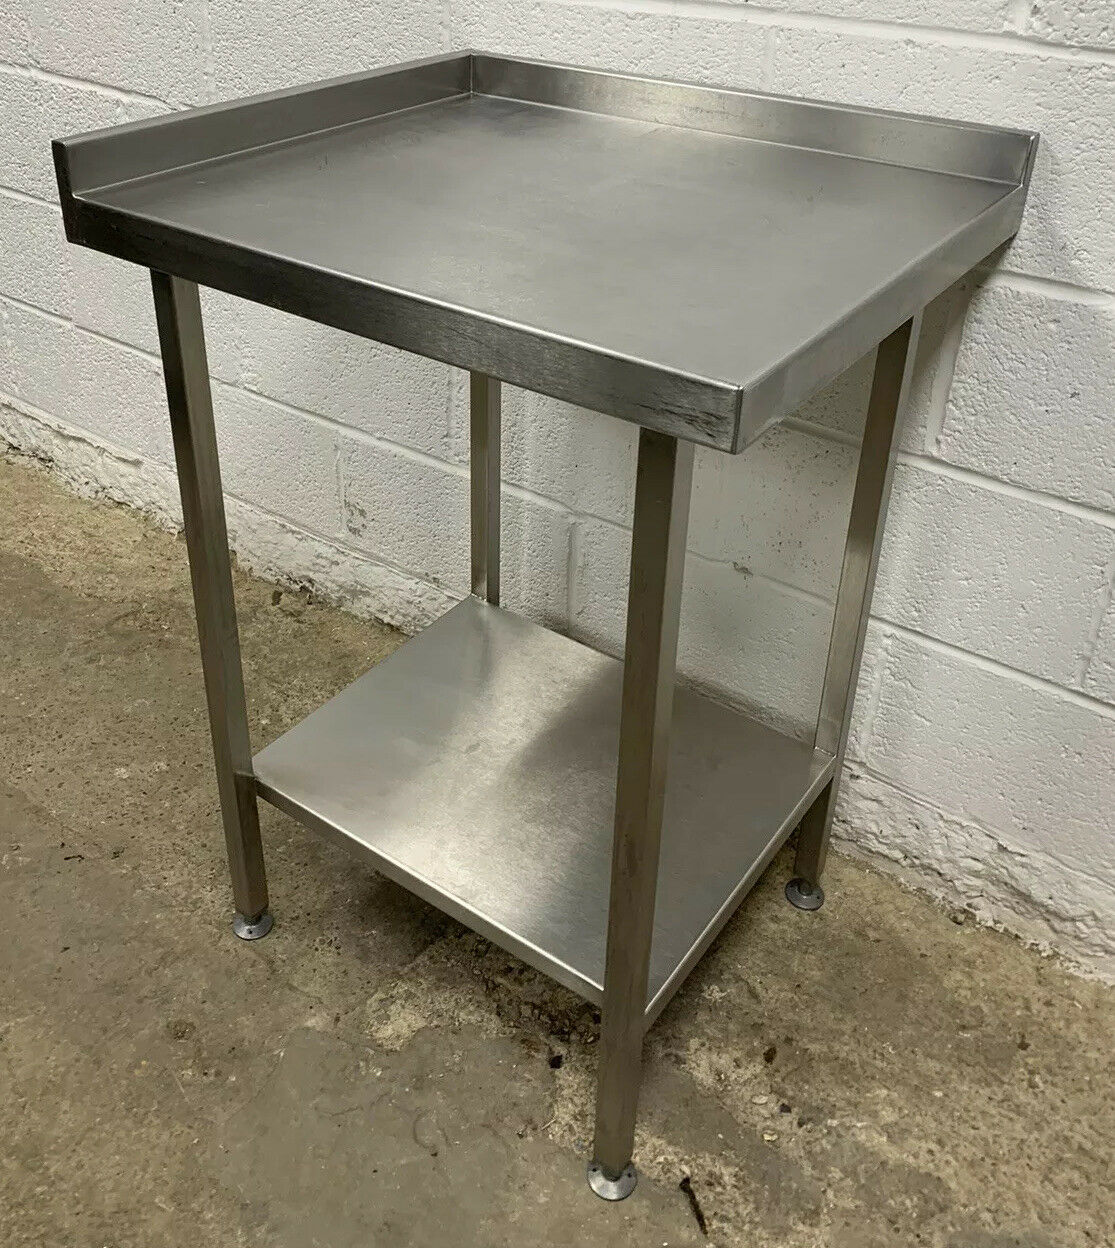 Stainless Steel Prep Table - Image 3 of 4